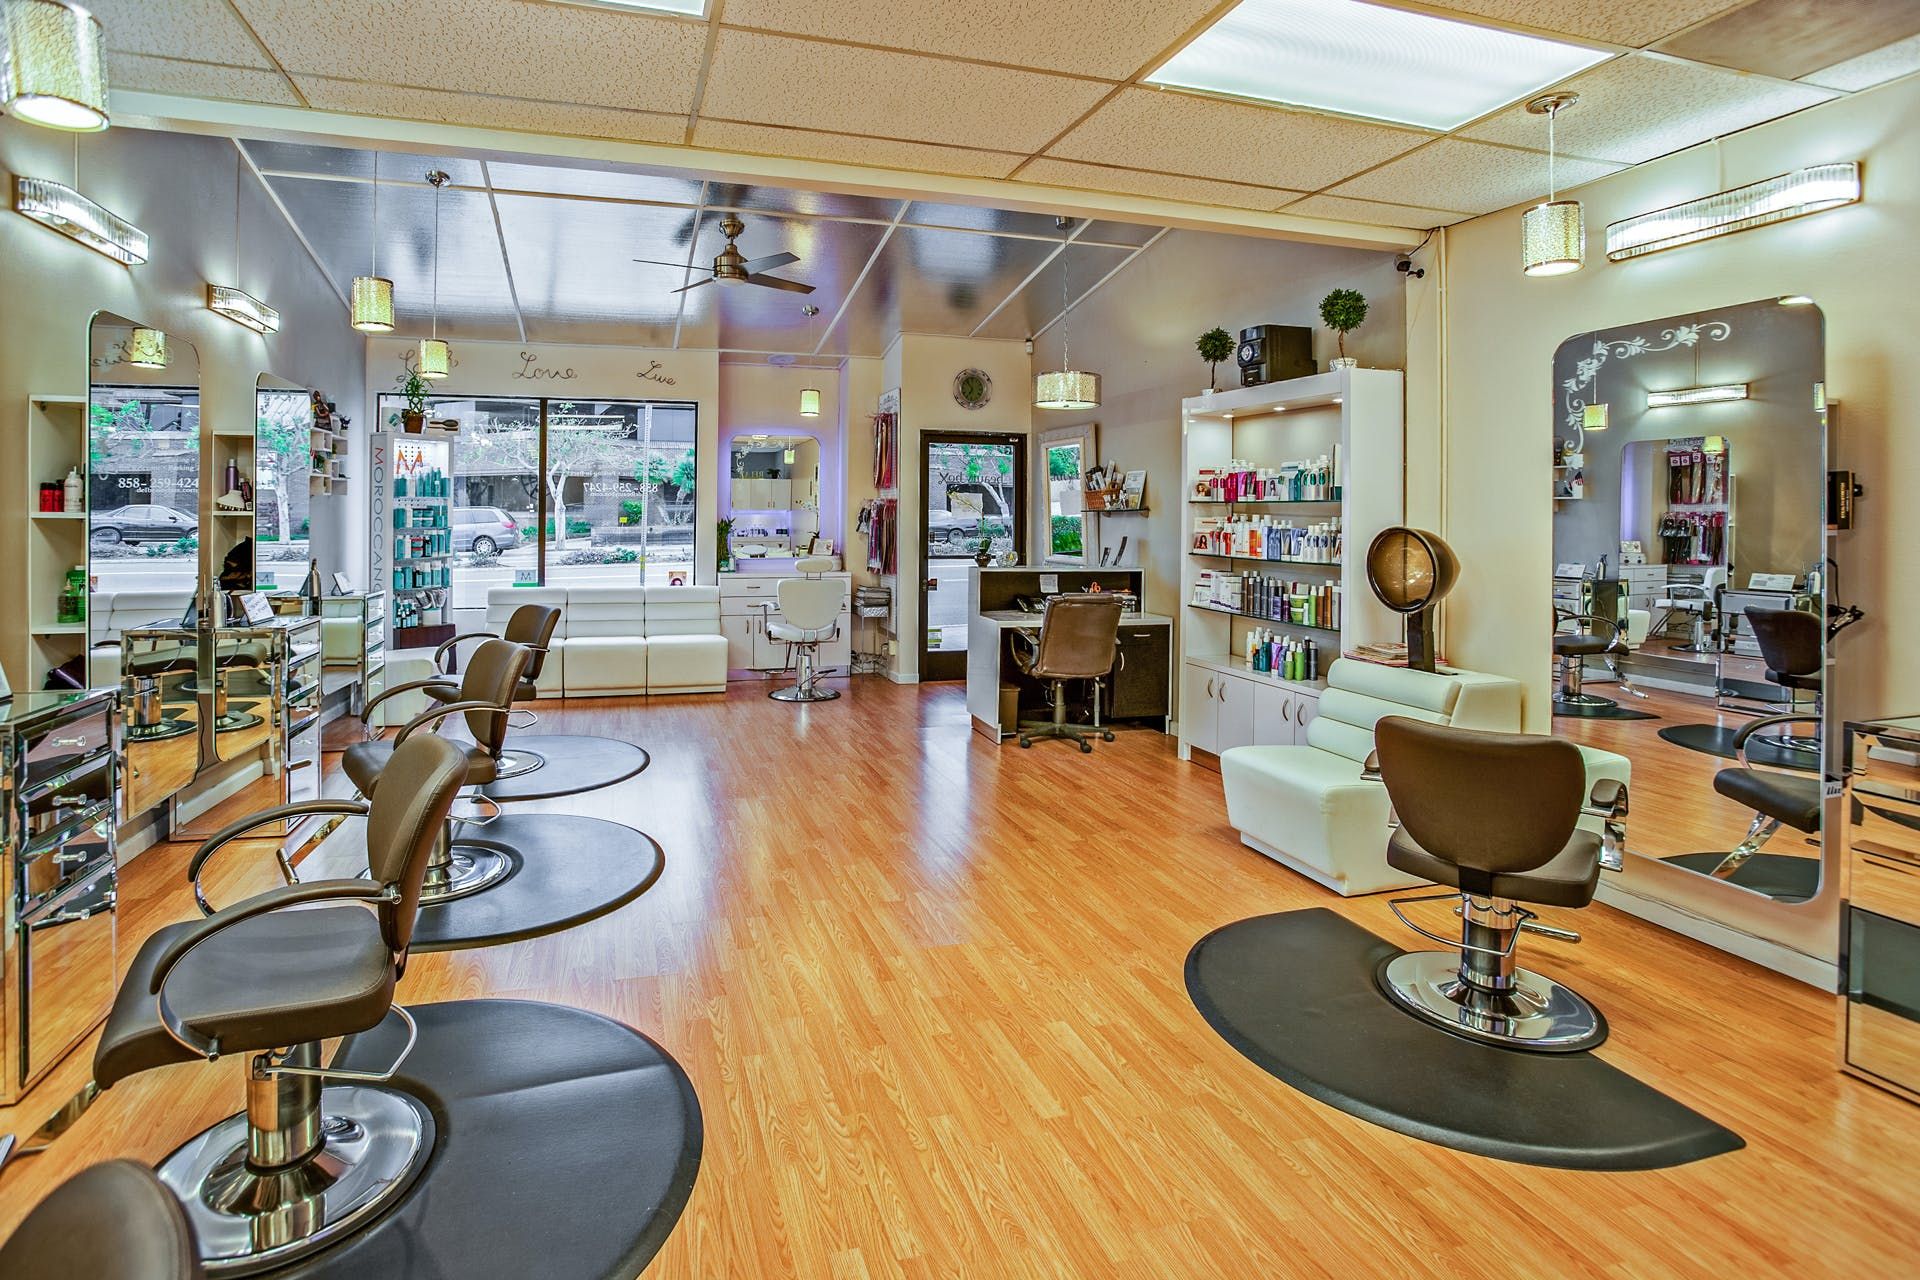 White And Brown Chairs Inside A Salon